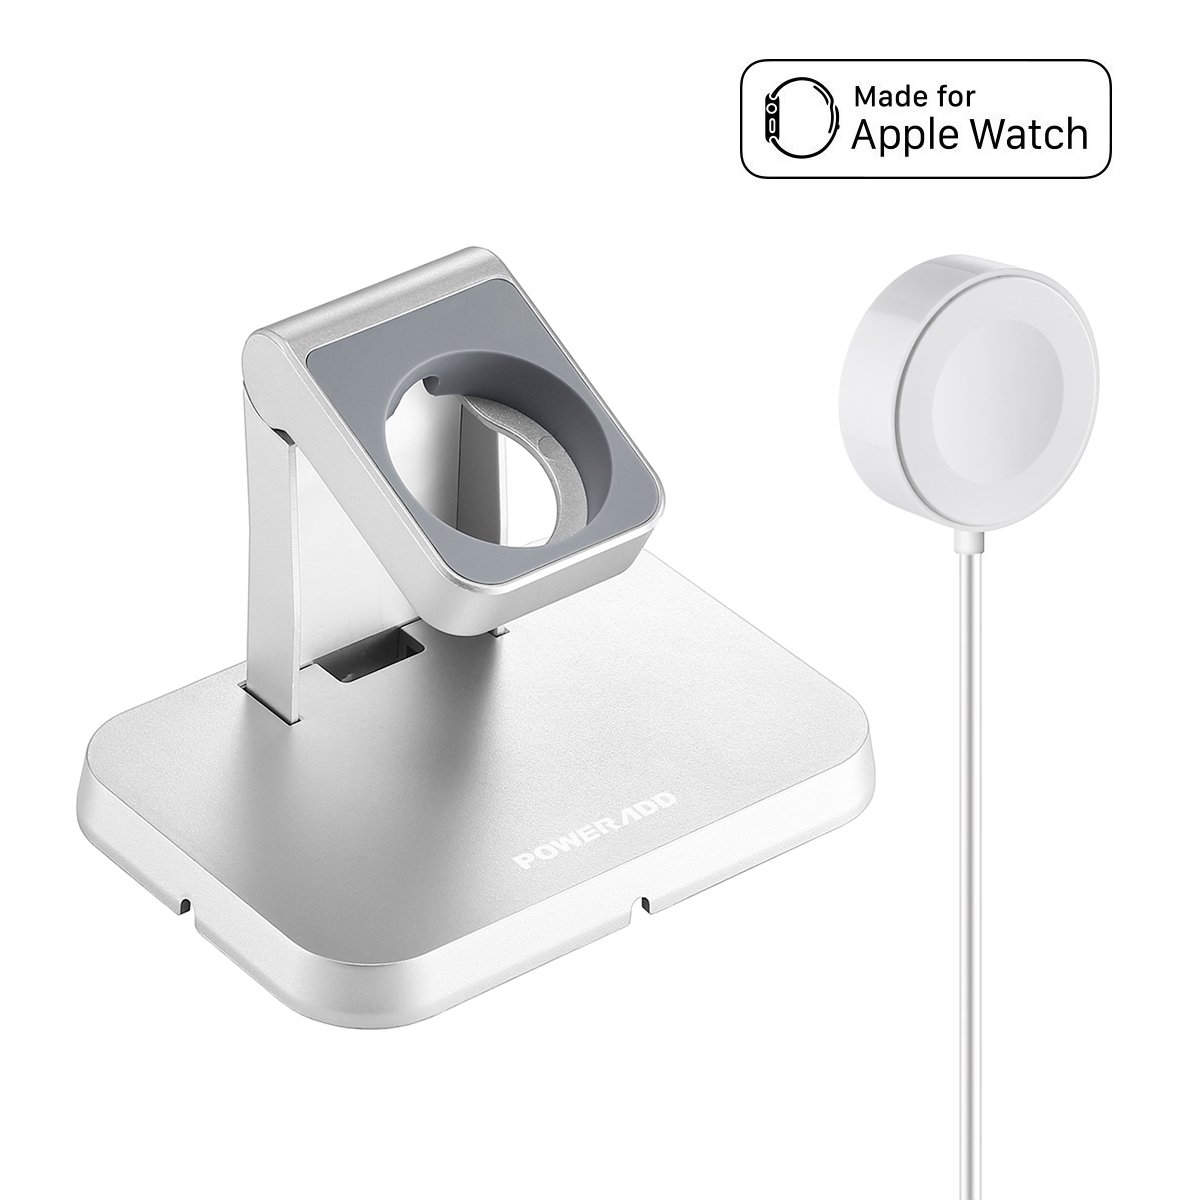 [ Apple MFi Certified ] Apple Watch Charger, Poweradd Magnetic Charging Dock and Stand for Apple Watch / iWatch 38mm & 42mm with Detachable Magnetic Charging Cable, Apple Watch Series 1 / 2 / 3